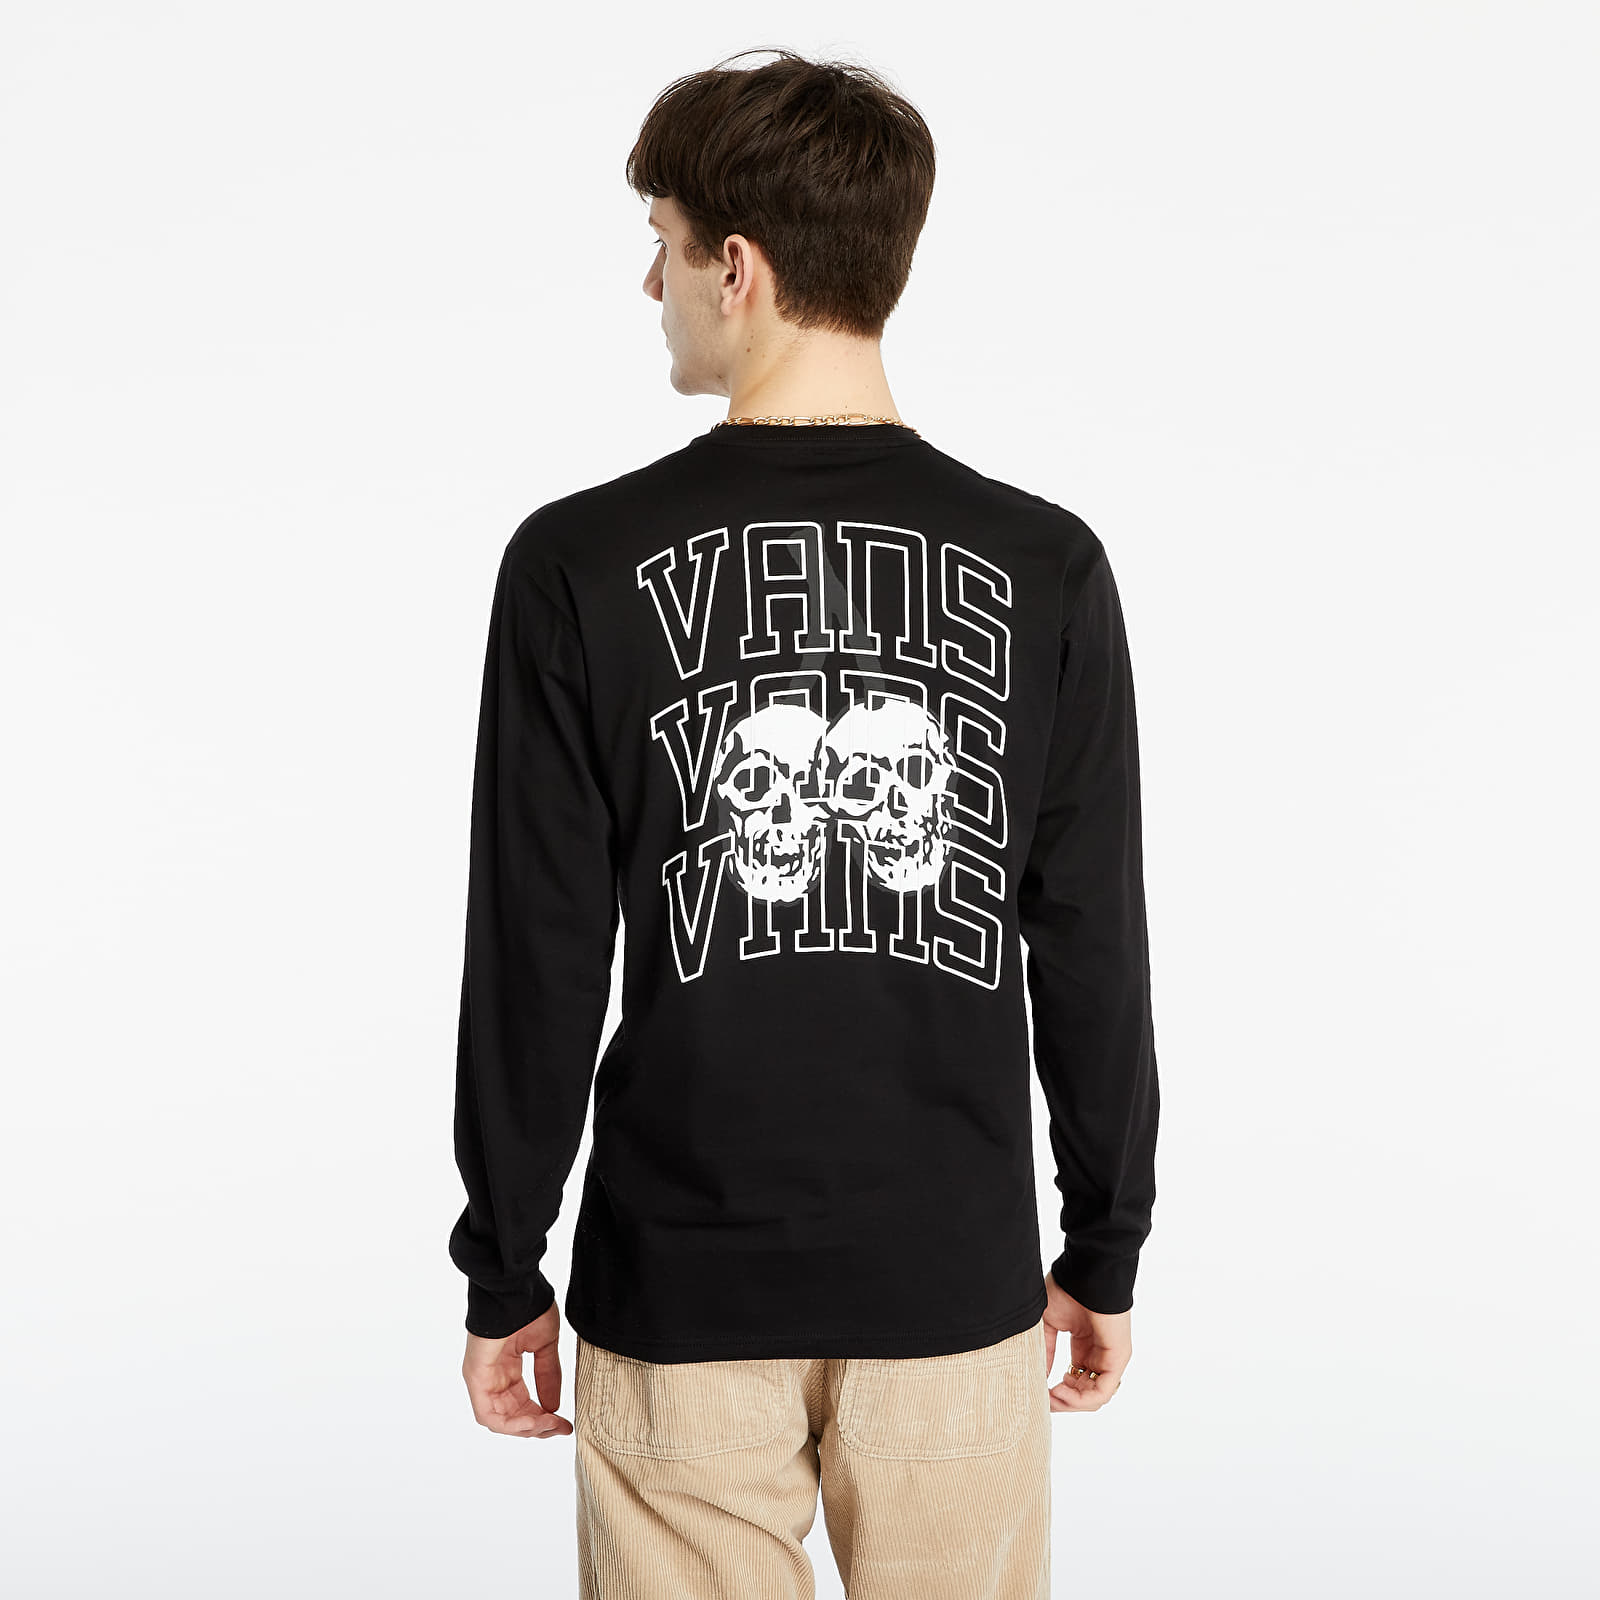 Vans New Varsity LS Tee Black EUR XL